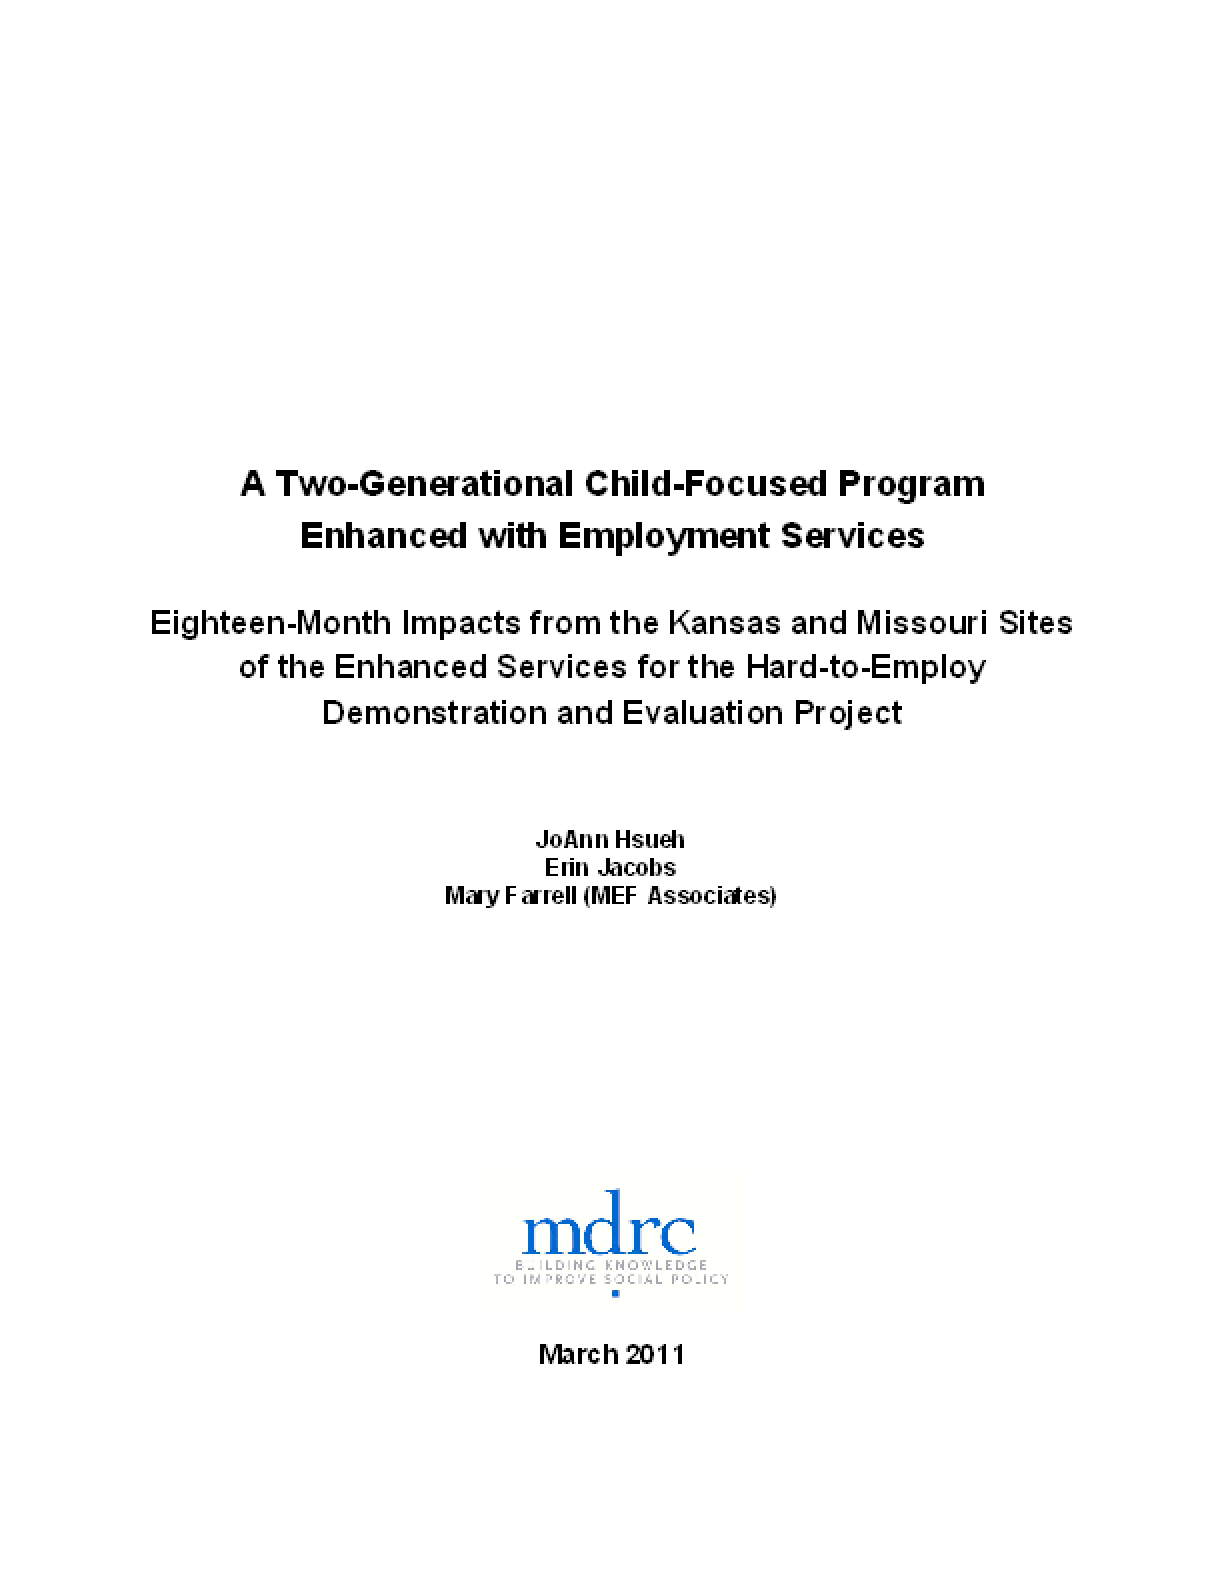 A Two-Generational Child-Focused Program Enhanced With Employment Services